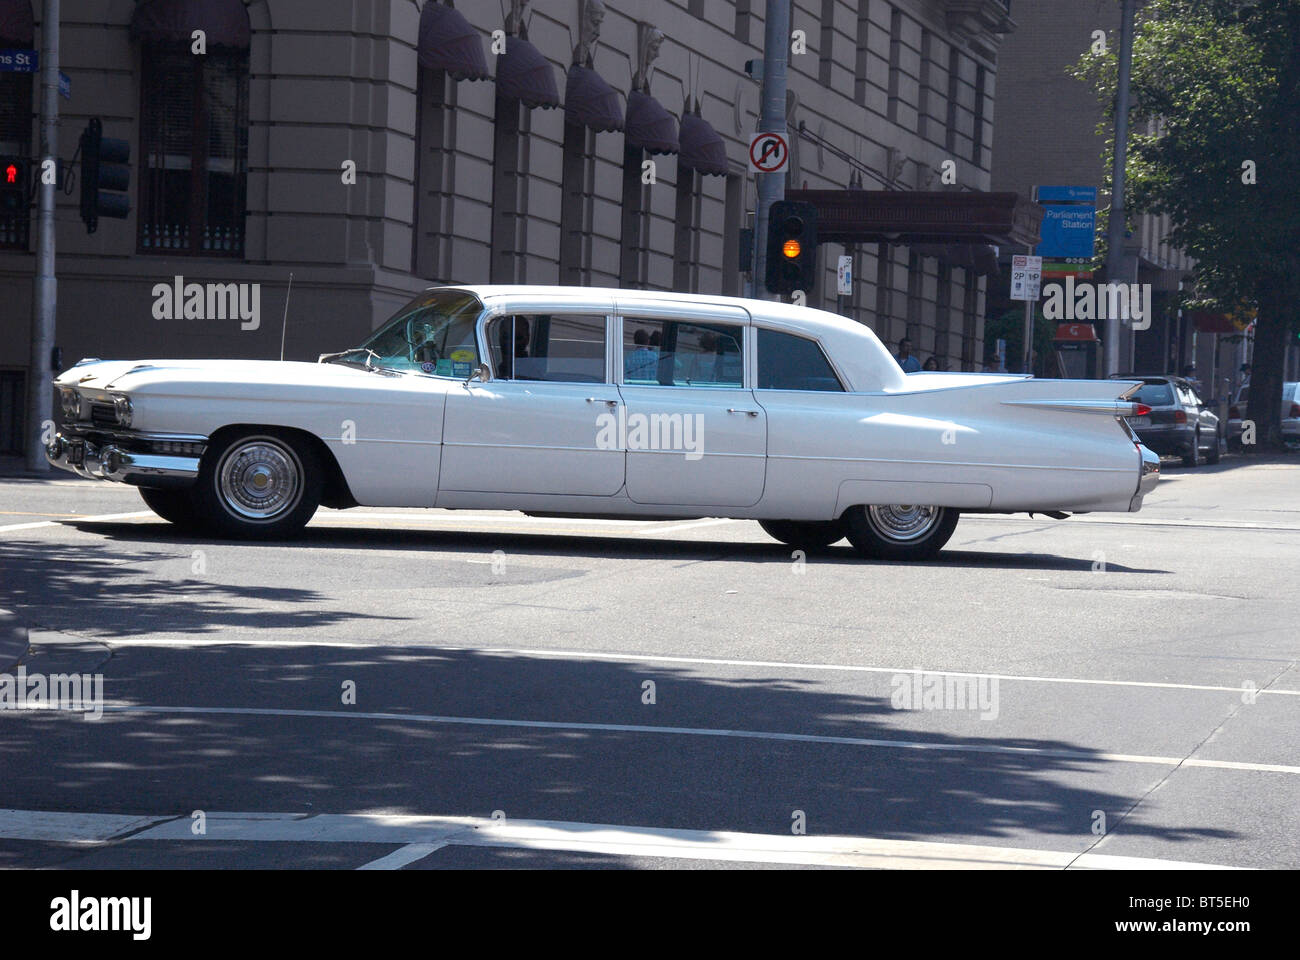 1964 White Classic Cadillac Sedan Deville car driving on a Melbourne street - Stock Image